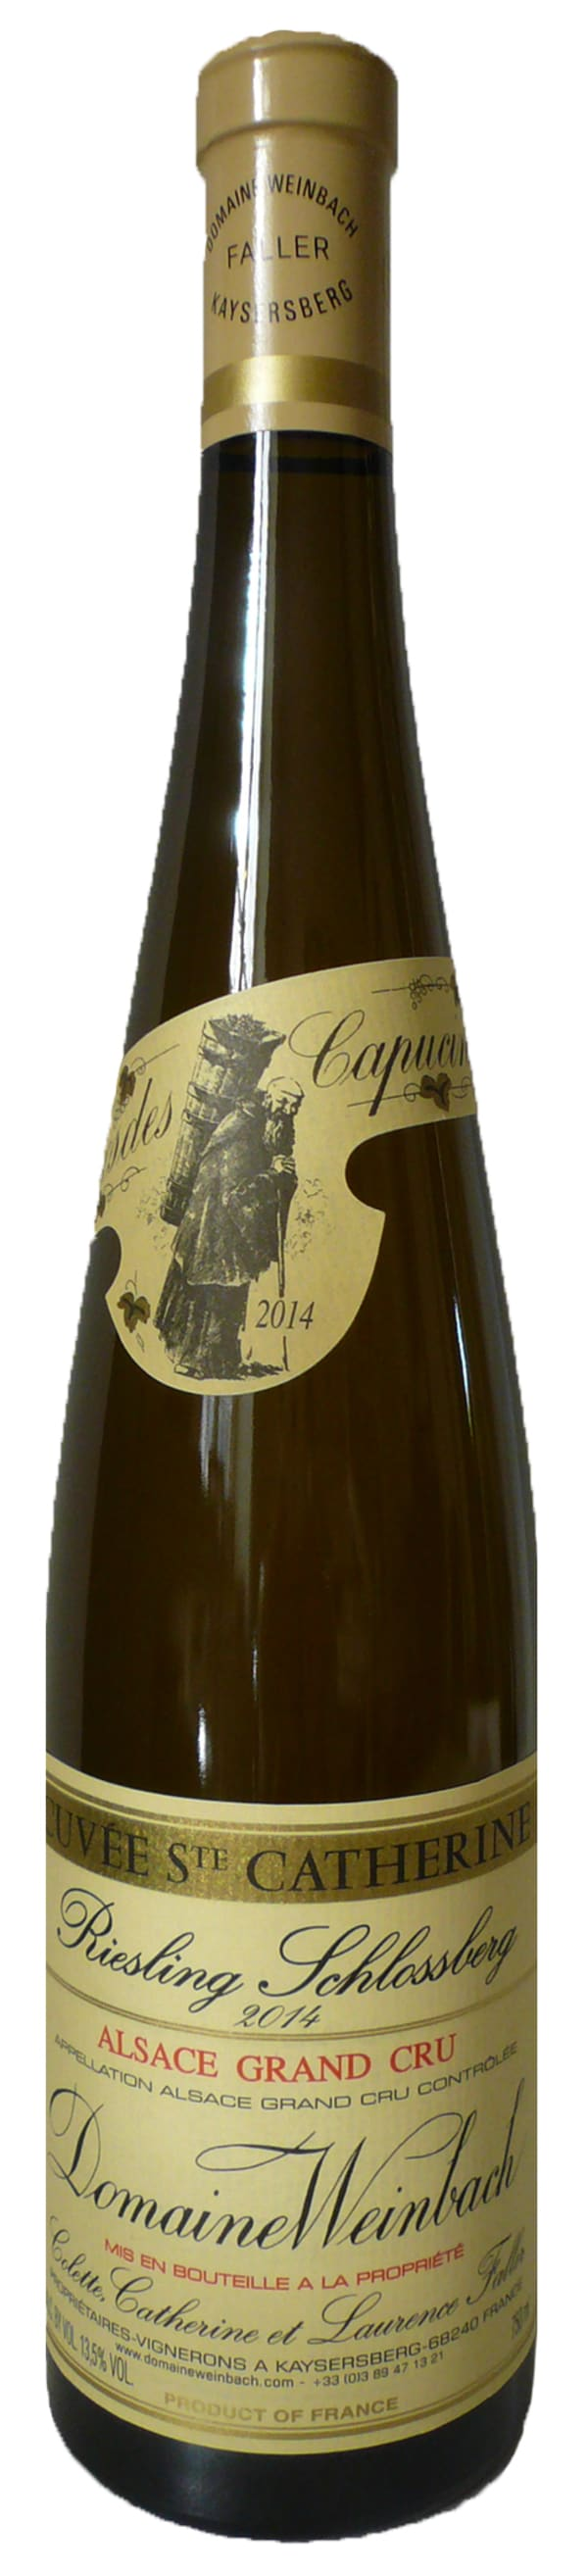 Domaine Weinbach Cuvée Ste Catherine Schlossberg Riesling  2015